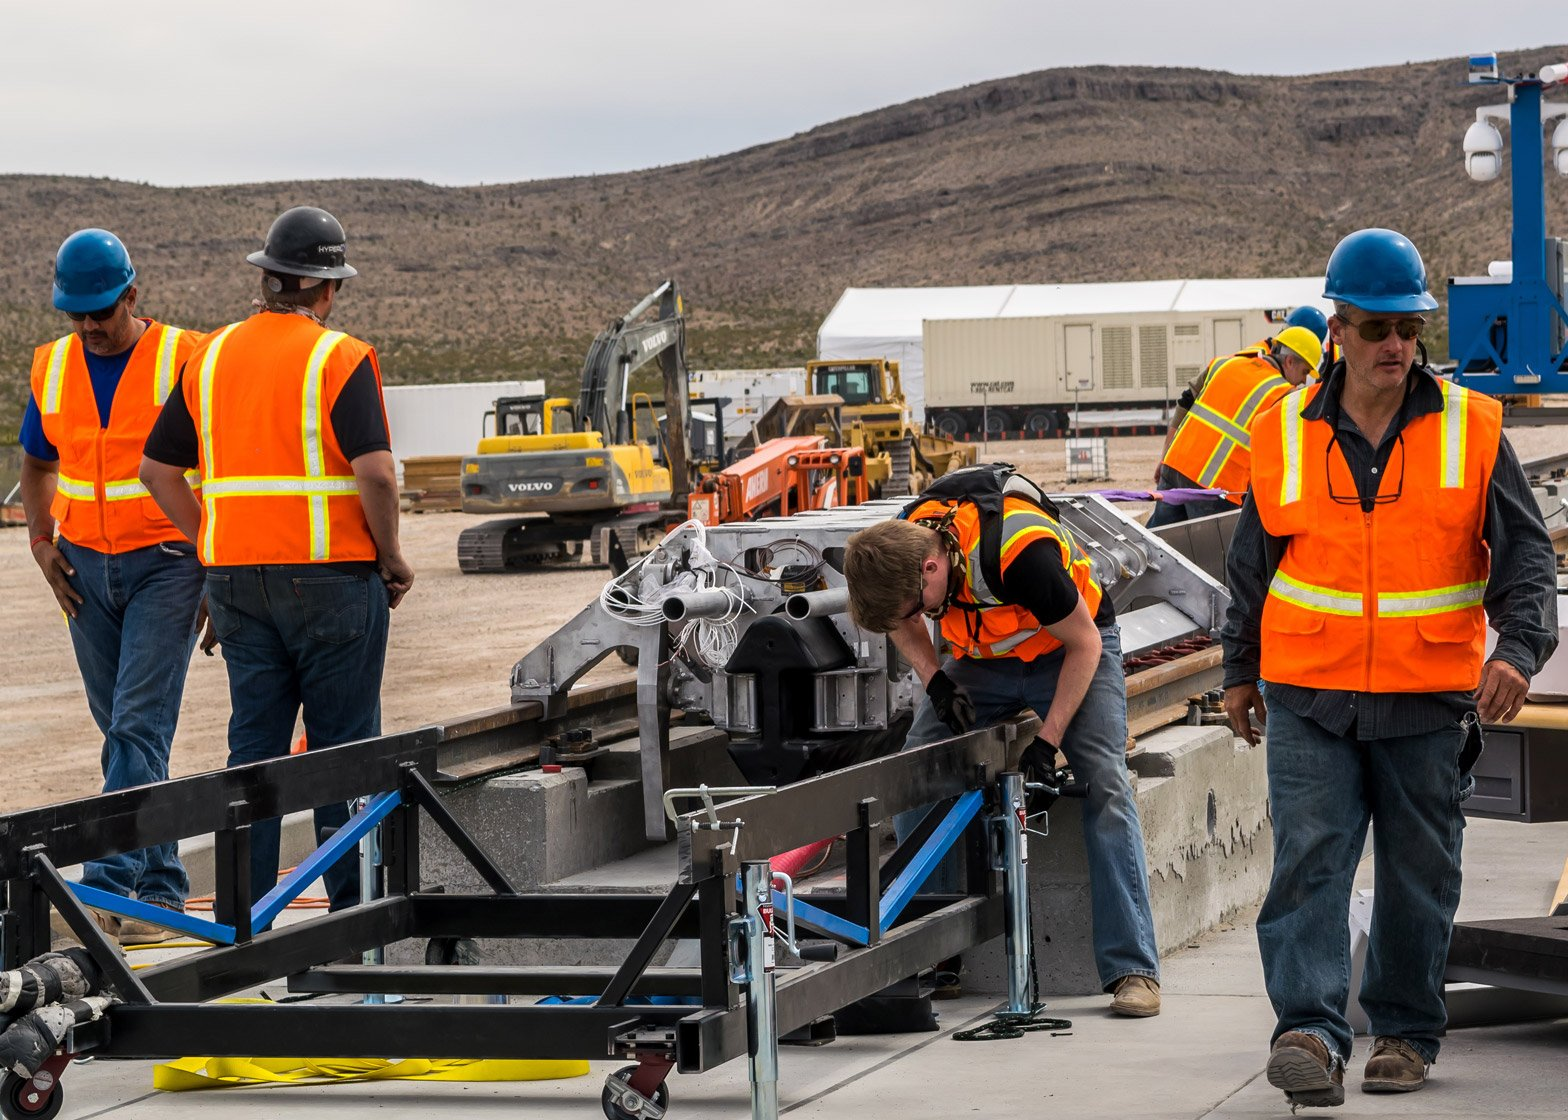 Hyperloop One project undergoes air propulsion test in the Nevada desert